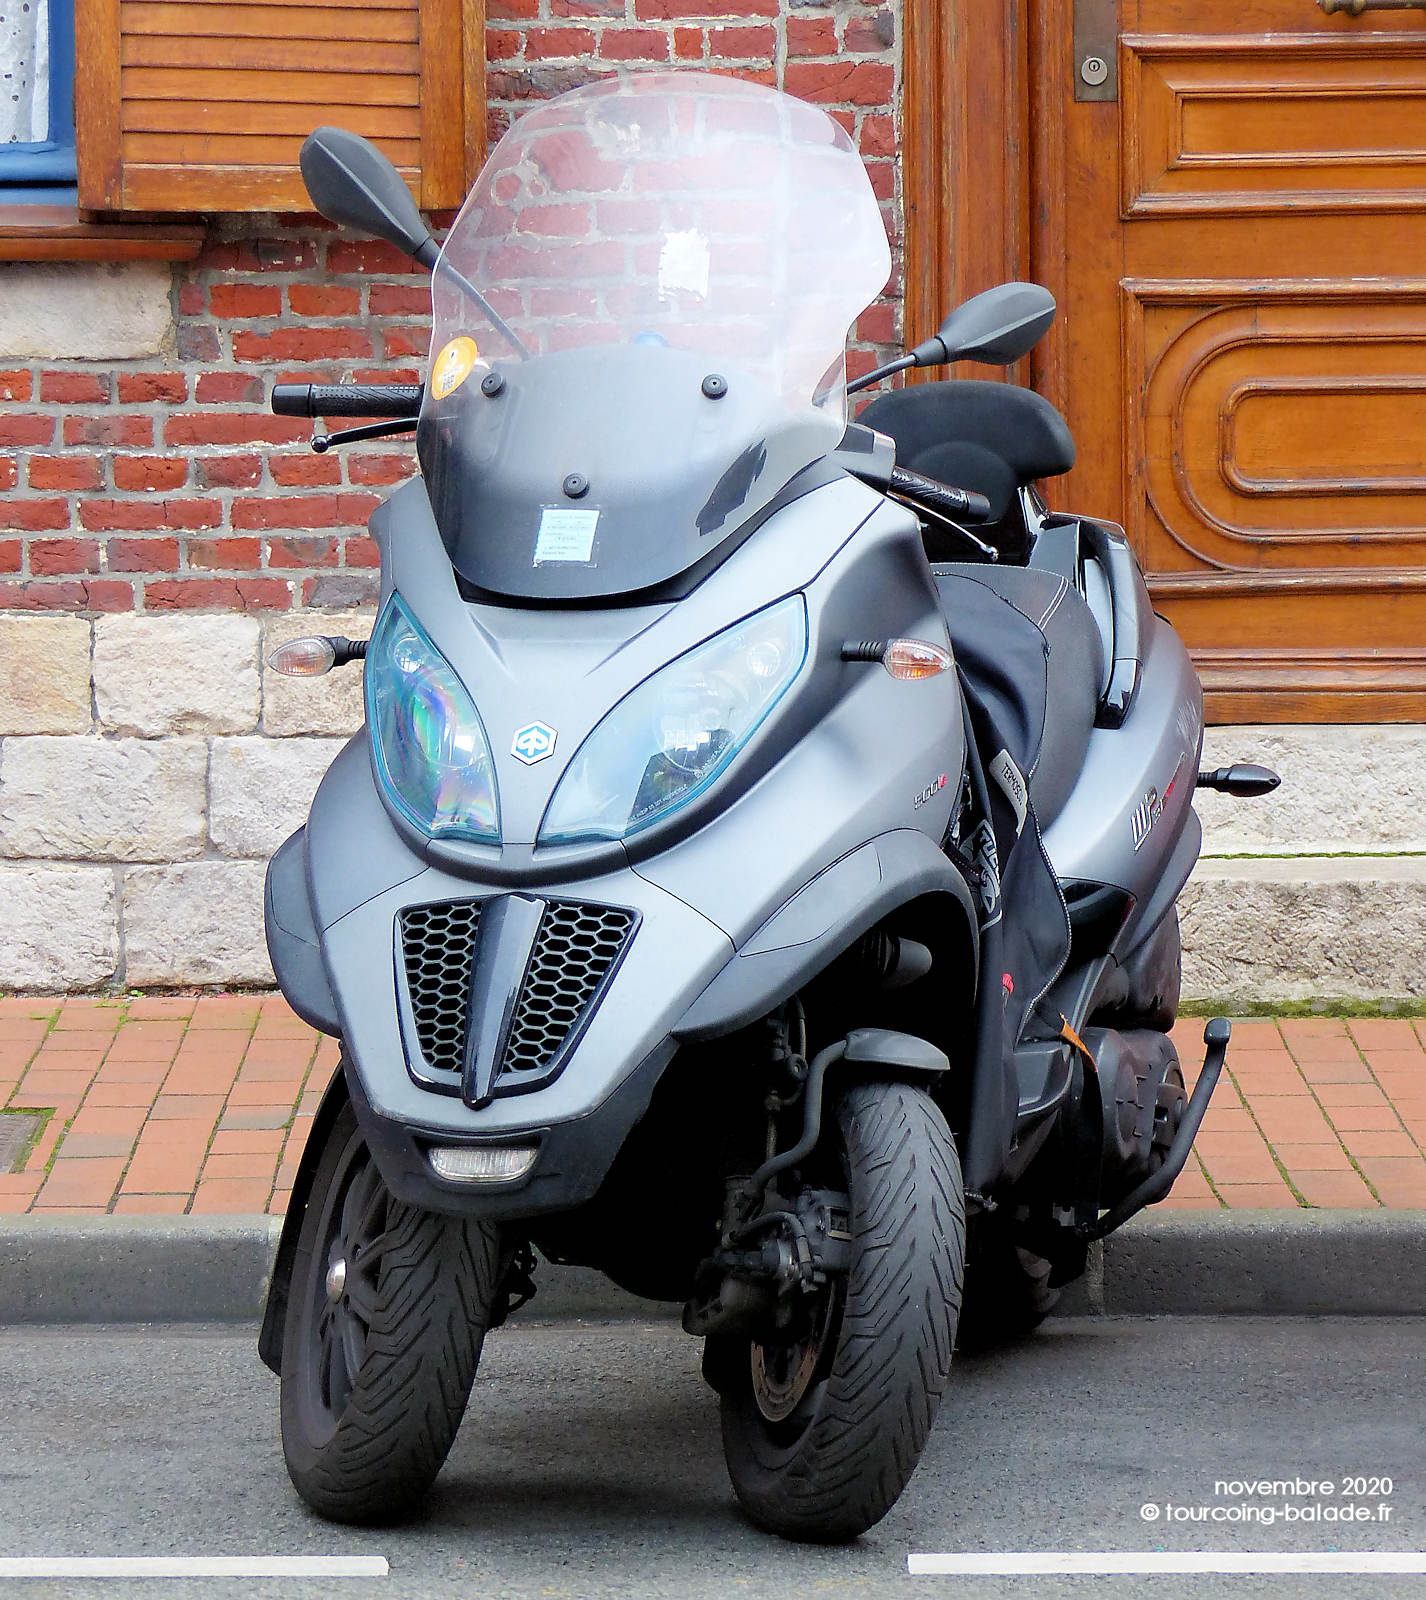 Piaggio Scooter MP3 500 ie LT, Tourcoing 2020